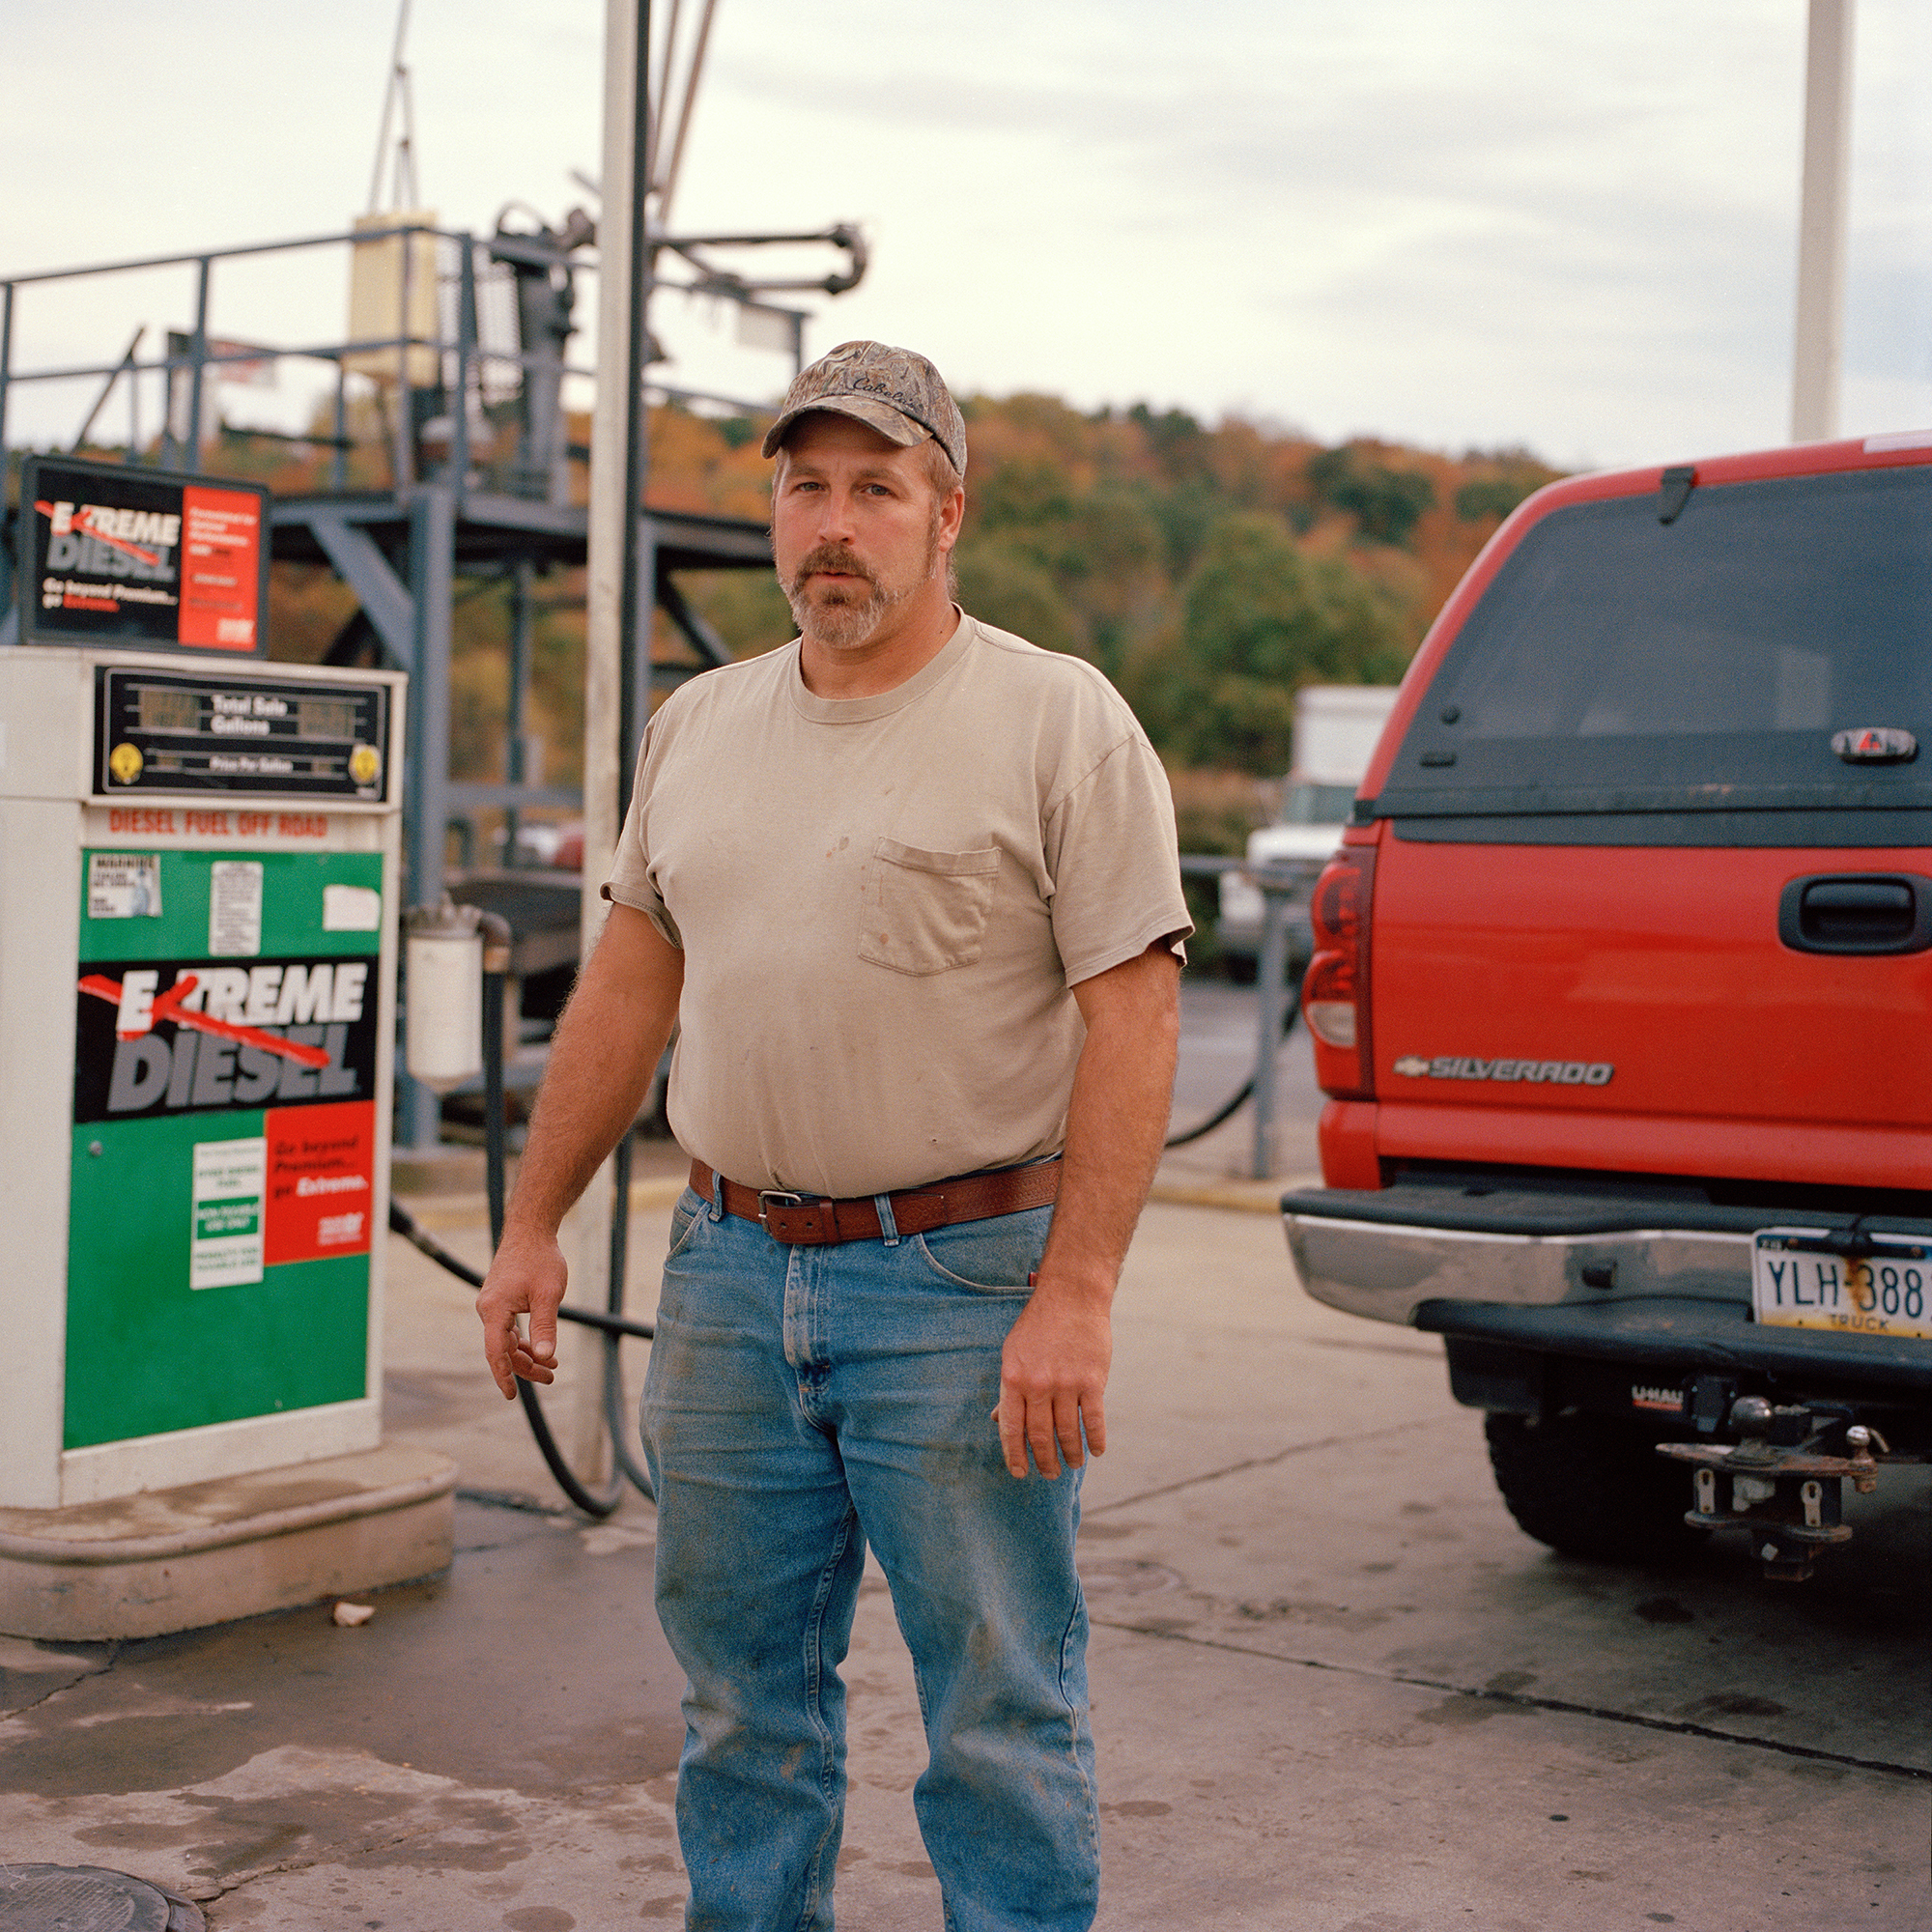 Brian filling gas cans at Glassmere Fuel and Service, Tarentum PA